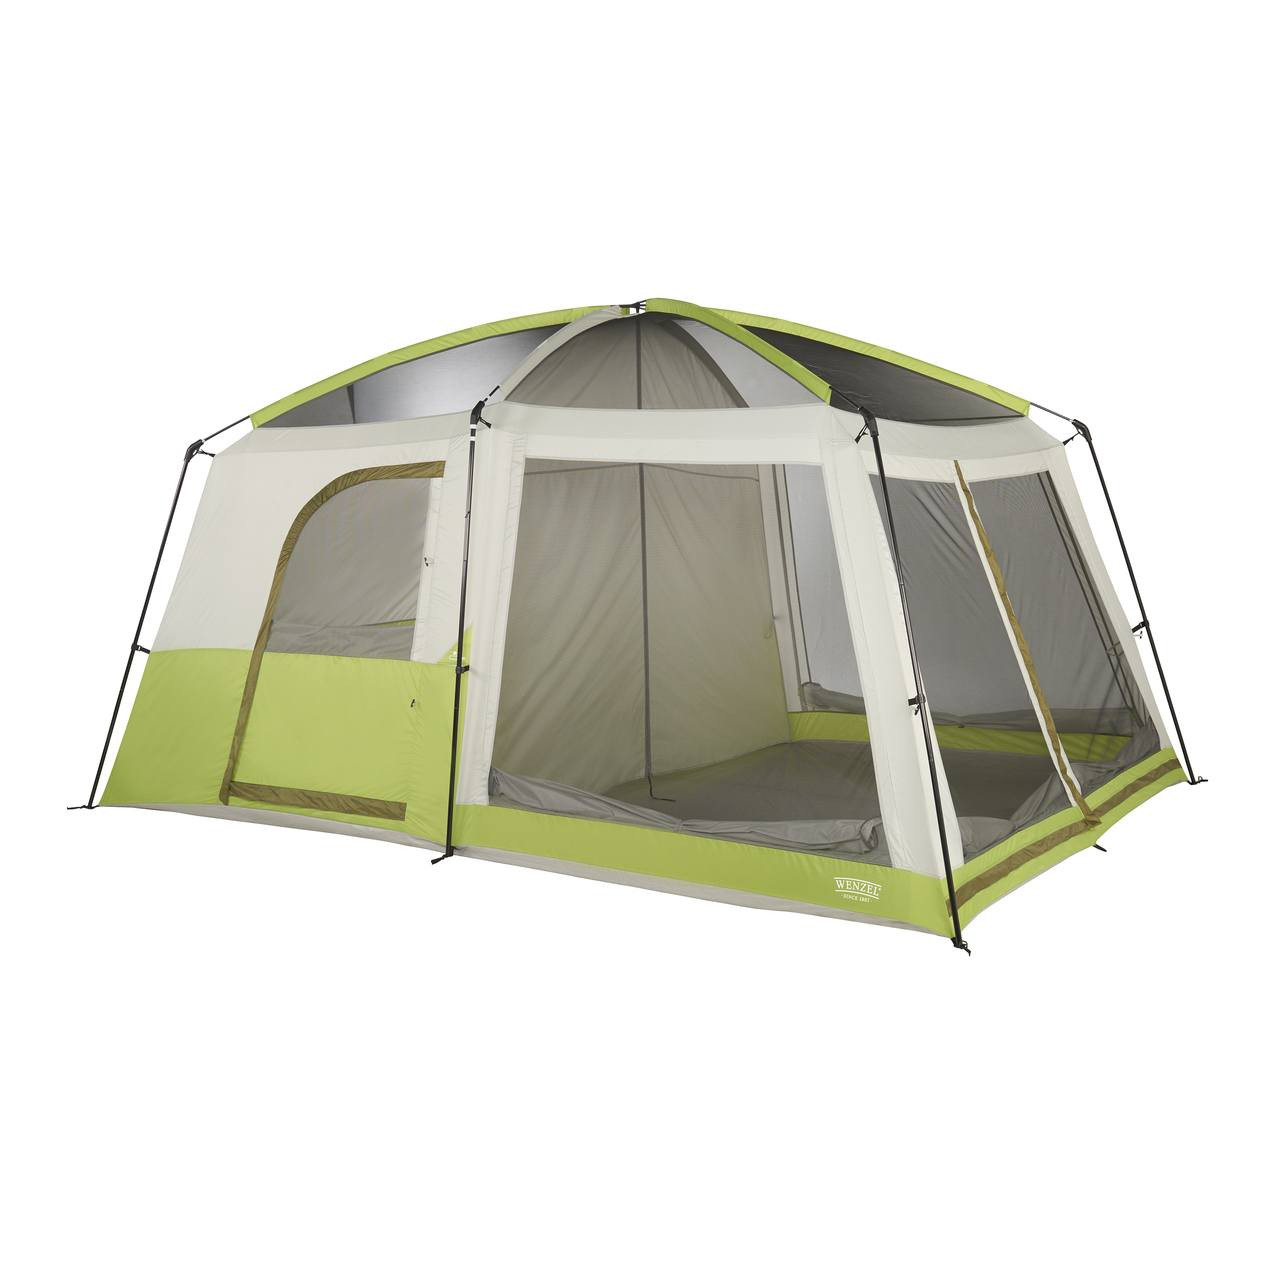 Wenzel Eldorado 8 tent, green and tan, completely set up with the rain fly off, the inside doors set up and the inside screen windows rolled down